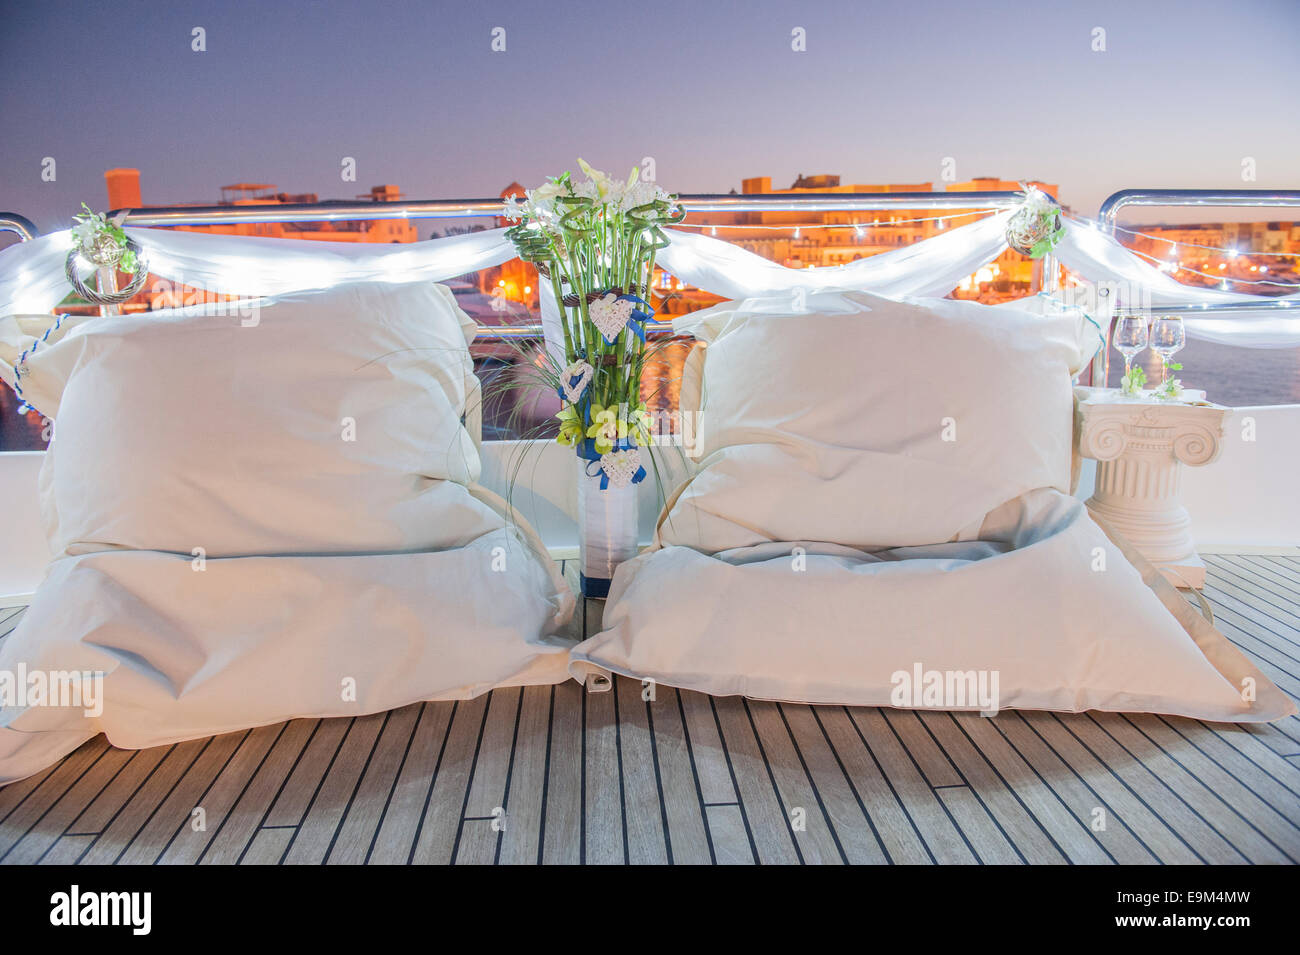 Pair of large white bean bag cushions on deck of boat in marina - Stock Image